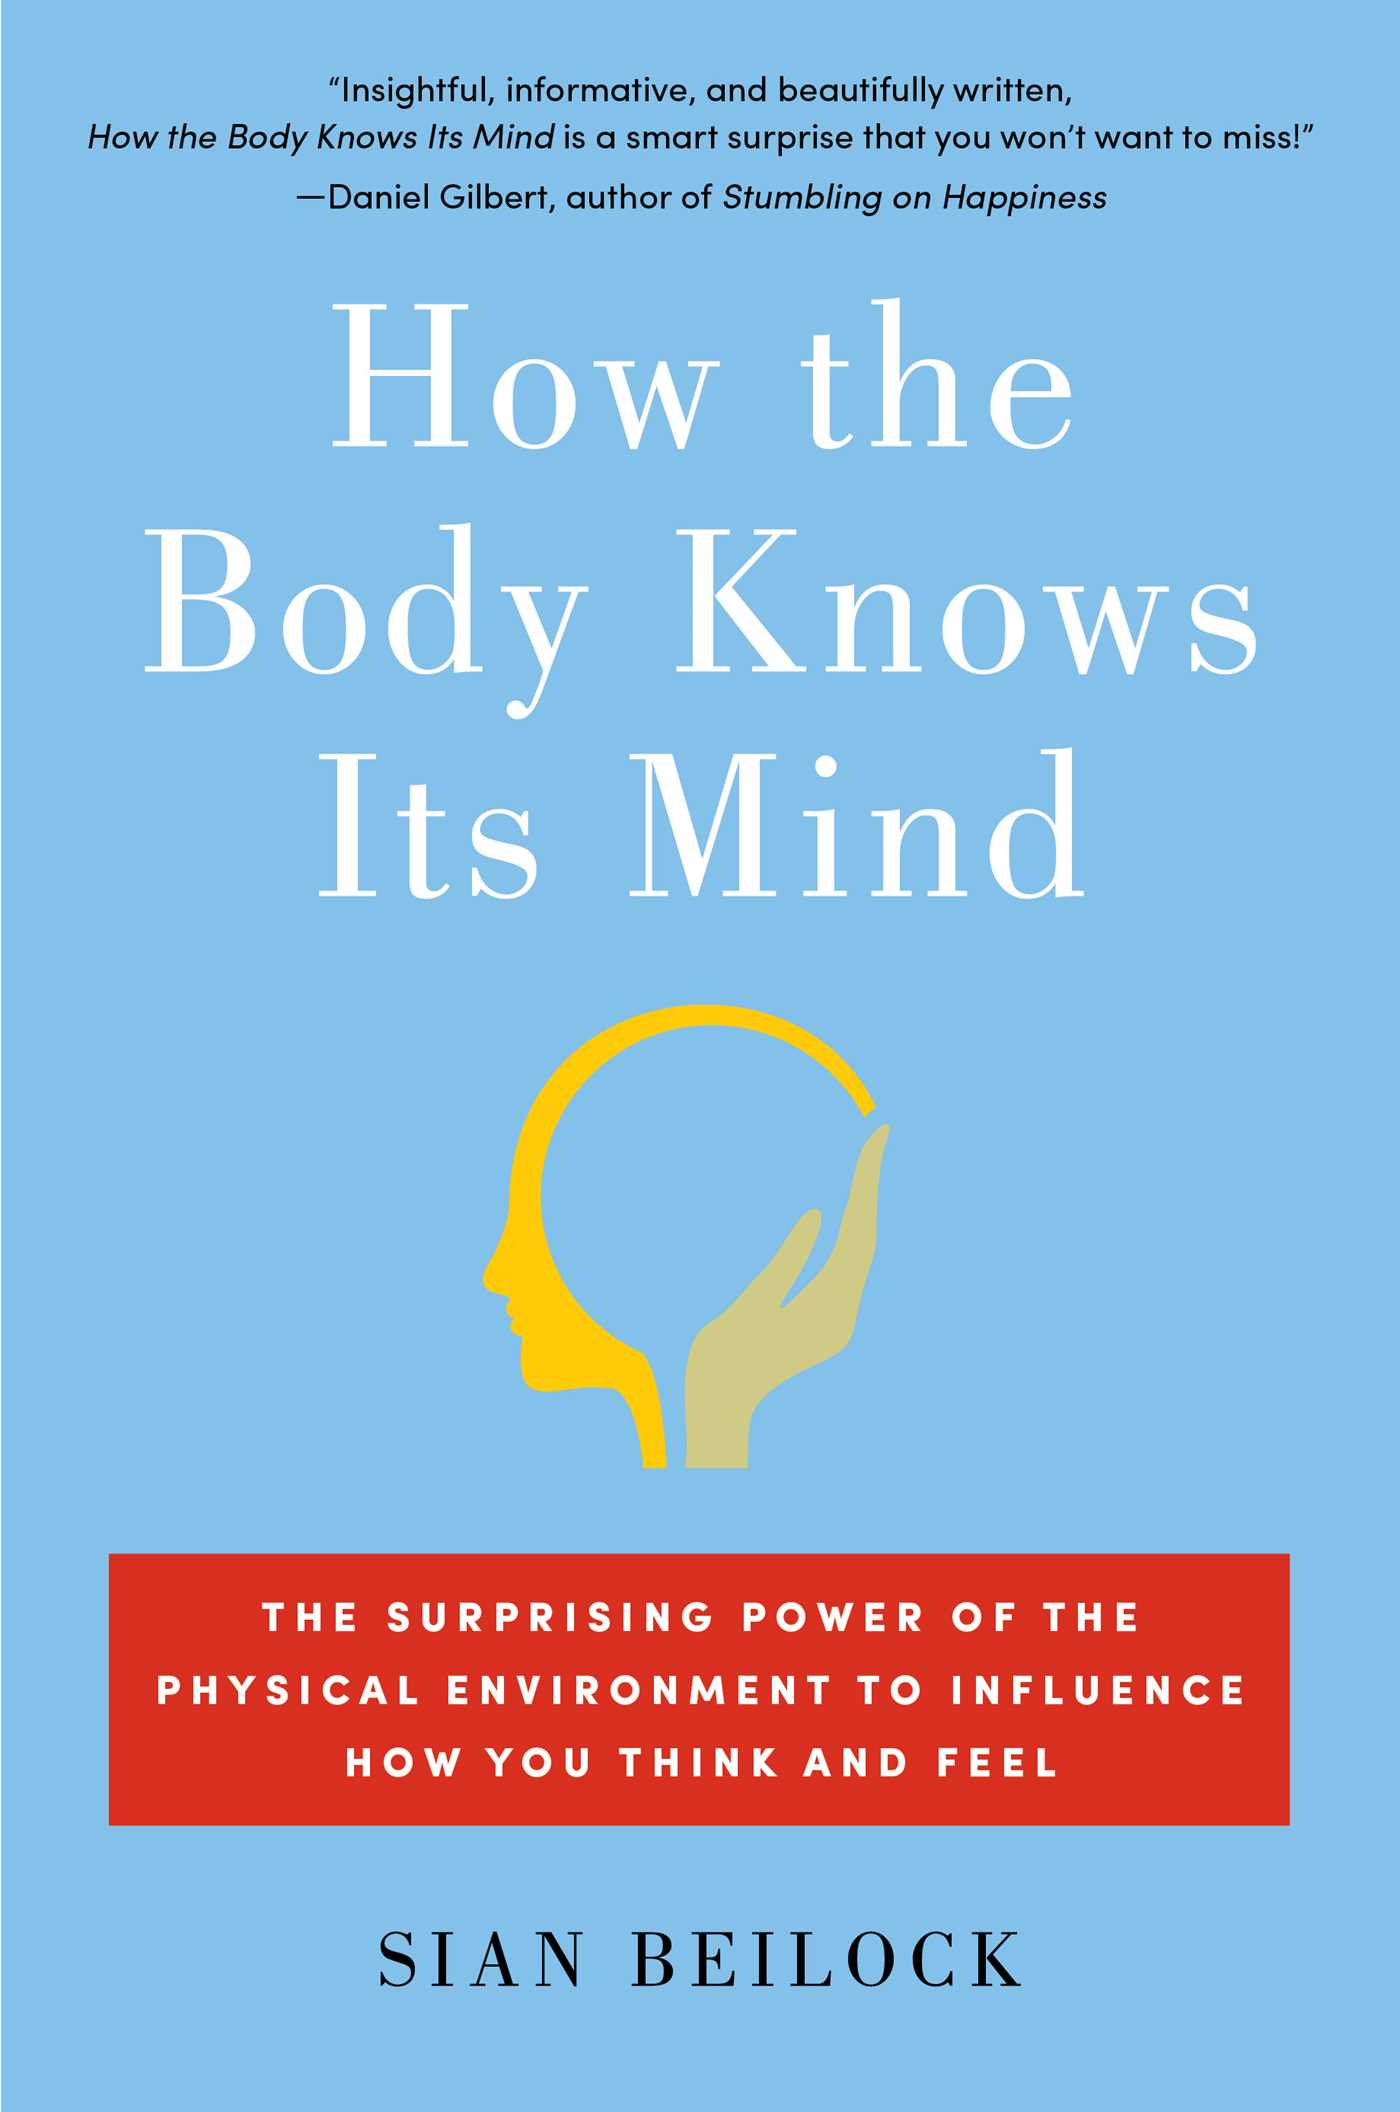 how-the-body-knows-its-mind-9781451626681_hr